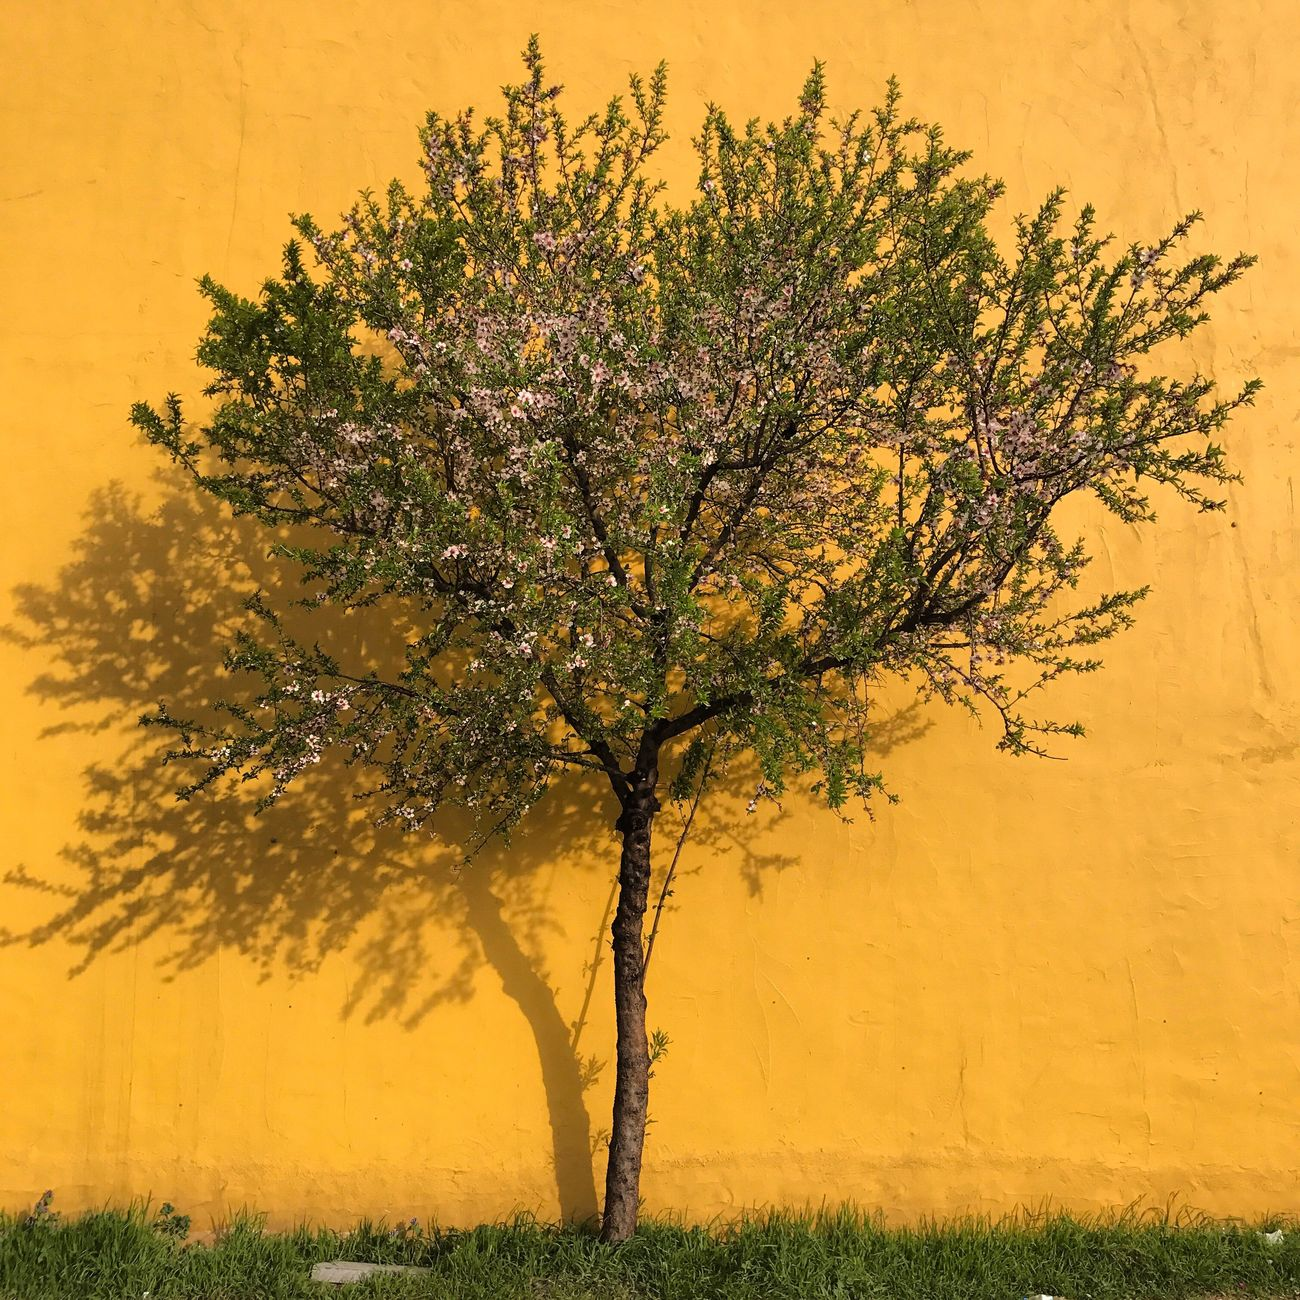 Pantone 123C Pantone123c Colors Colorful Yellow Wall Tree Spring Spring Flowers Yellow Color